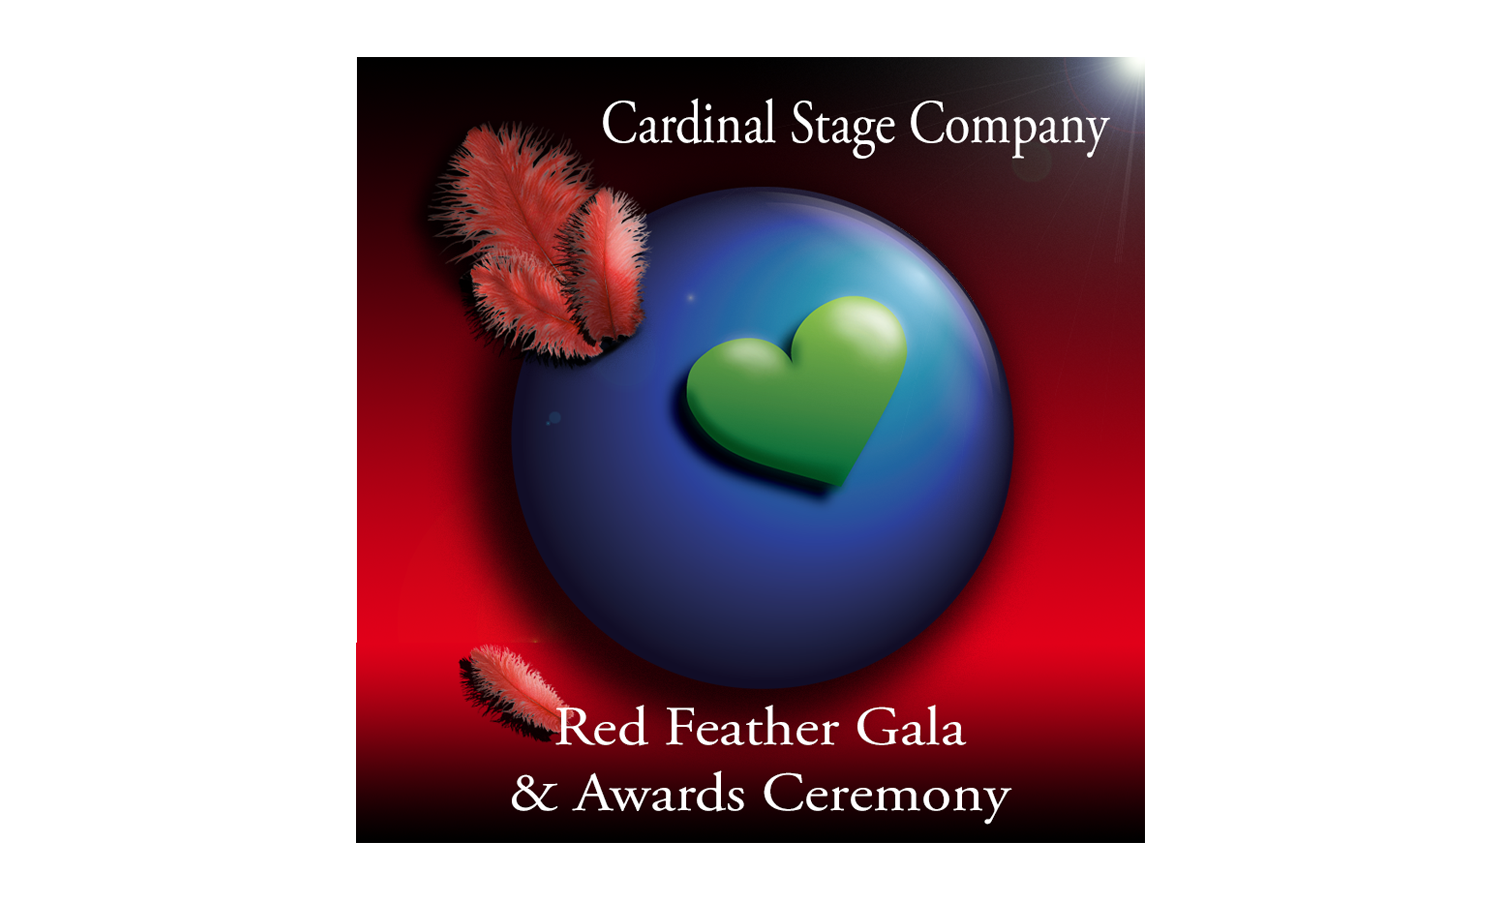 RED FEATHER GALA GLOBE.png